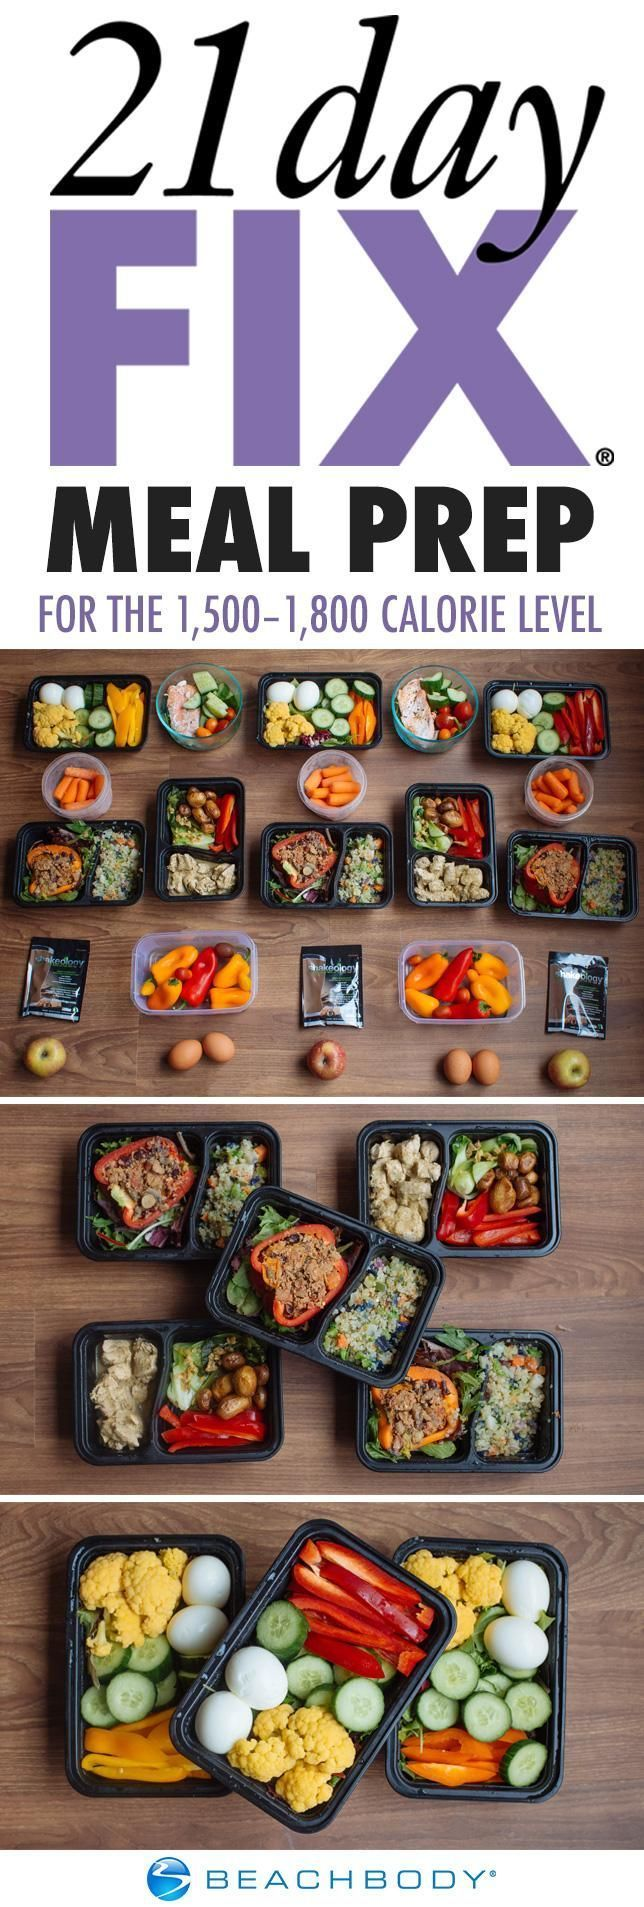 "If you've fallen into a meal prep rut, it's time to try something new! Click through for a full 21 Day Fix meal prep menu, complete with tasty recipes, a grocery list, and preparation instructions. // Beachbody // <a href=""http://www.beachbody.com/beachbodyblog"" rel=""nofollow"" target=""_blank"">BeachbodyBlog.com</a> // 21 Day Fix Approved // nutrition // clean eating // fitfood…"